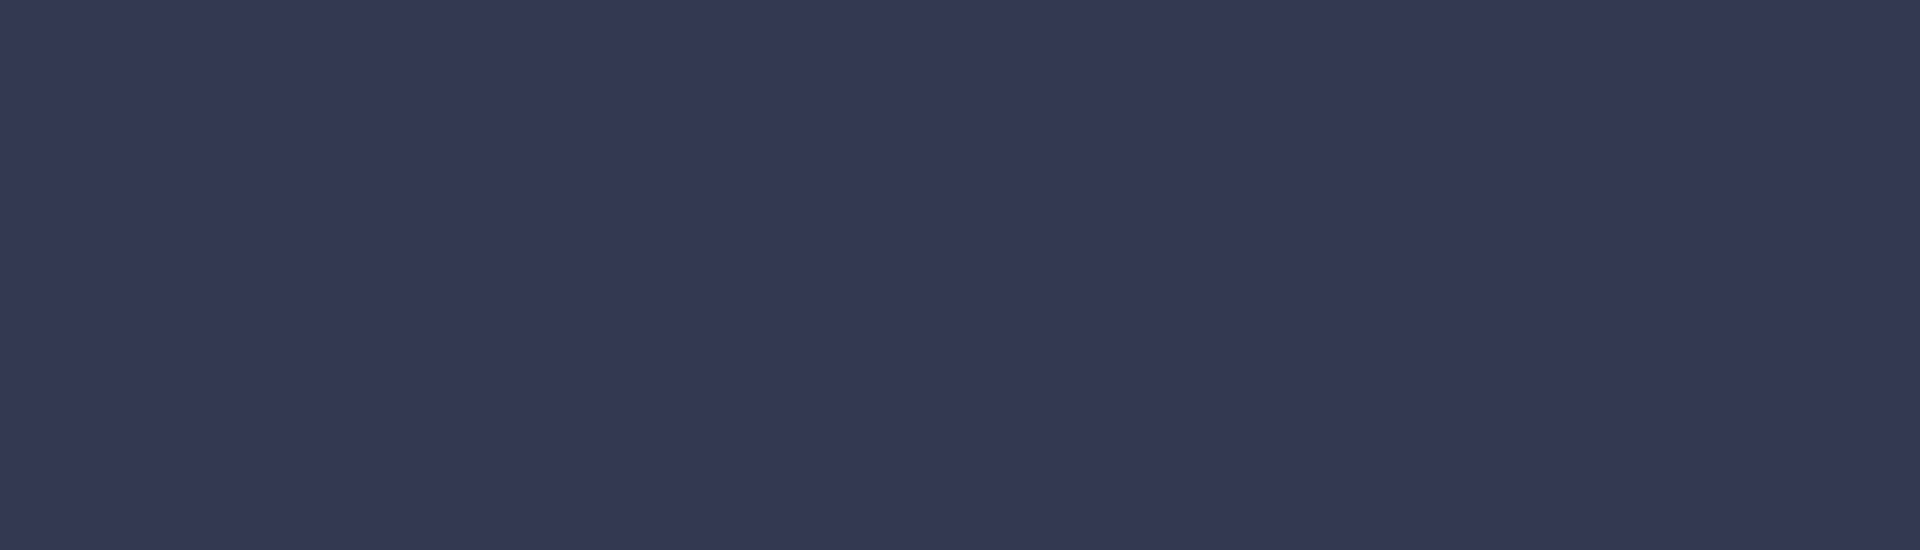 Deep navy blue solid background